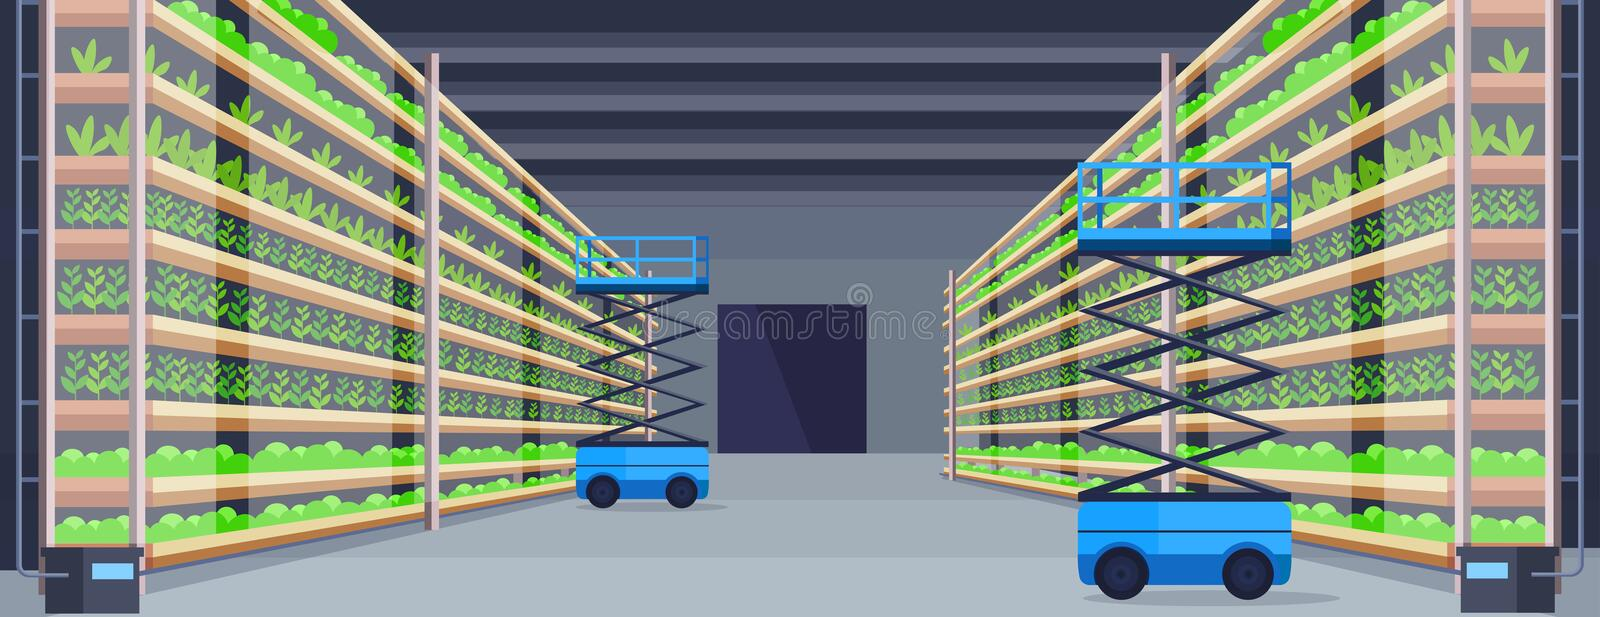 Hydraulic scissors lift platforms in modern organic hydroponic vertical farm interior agriculture farming system concept. Green plants growing industry royalty free illustration